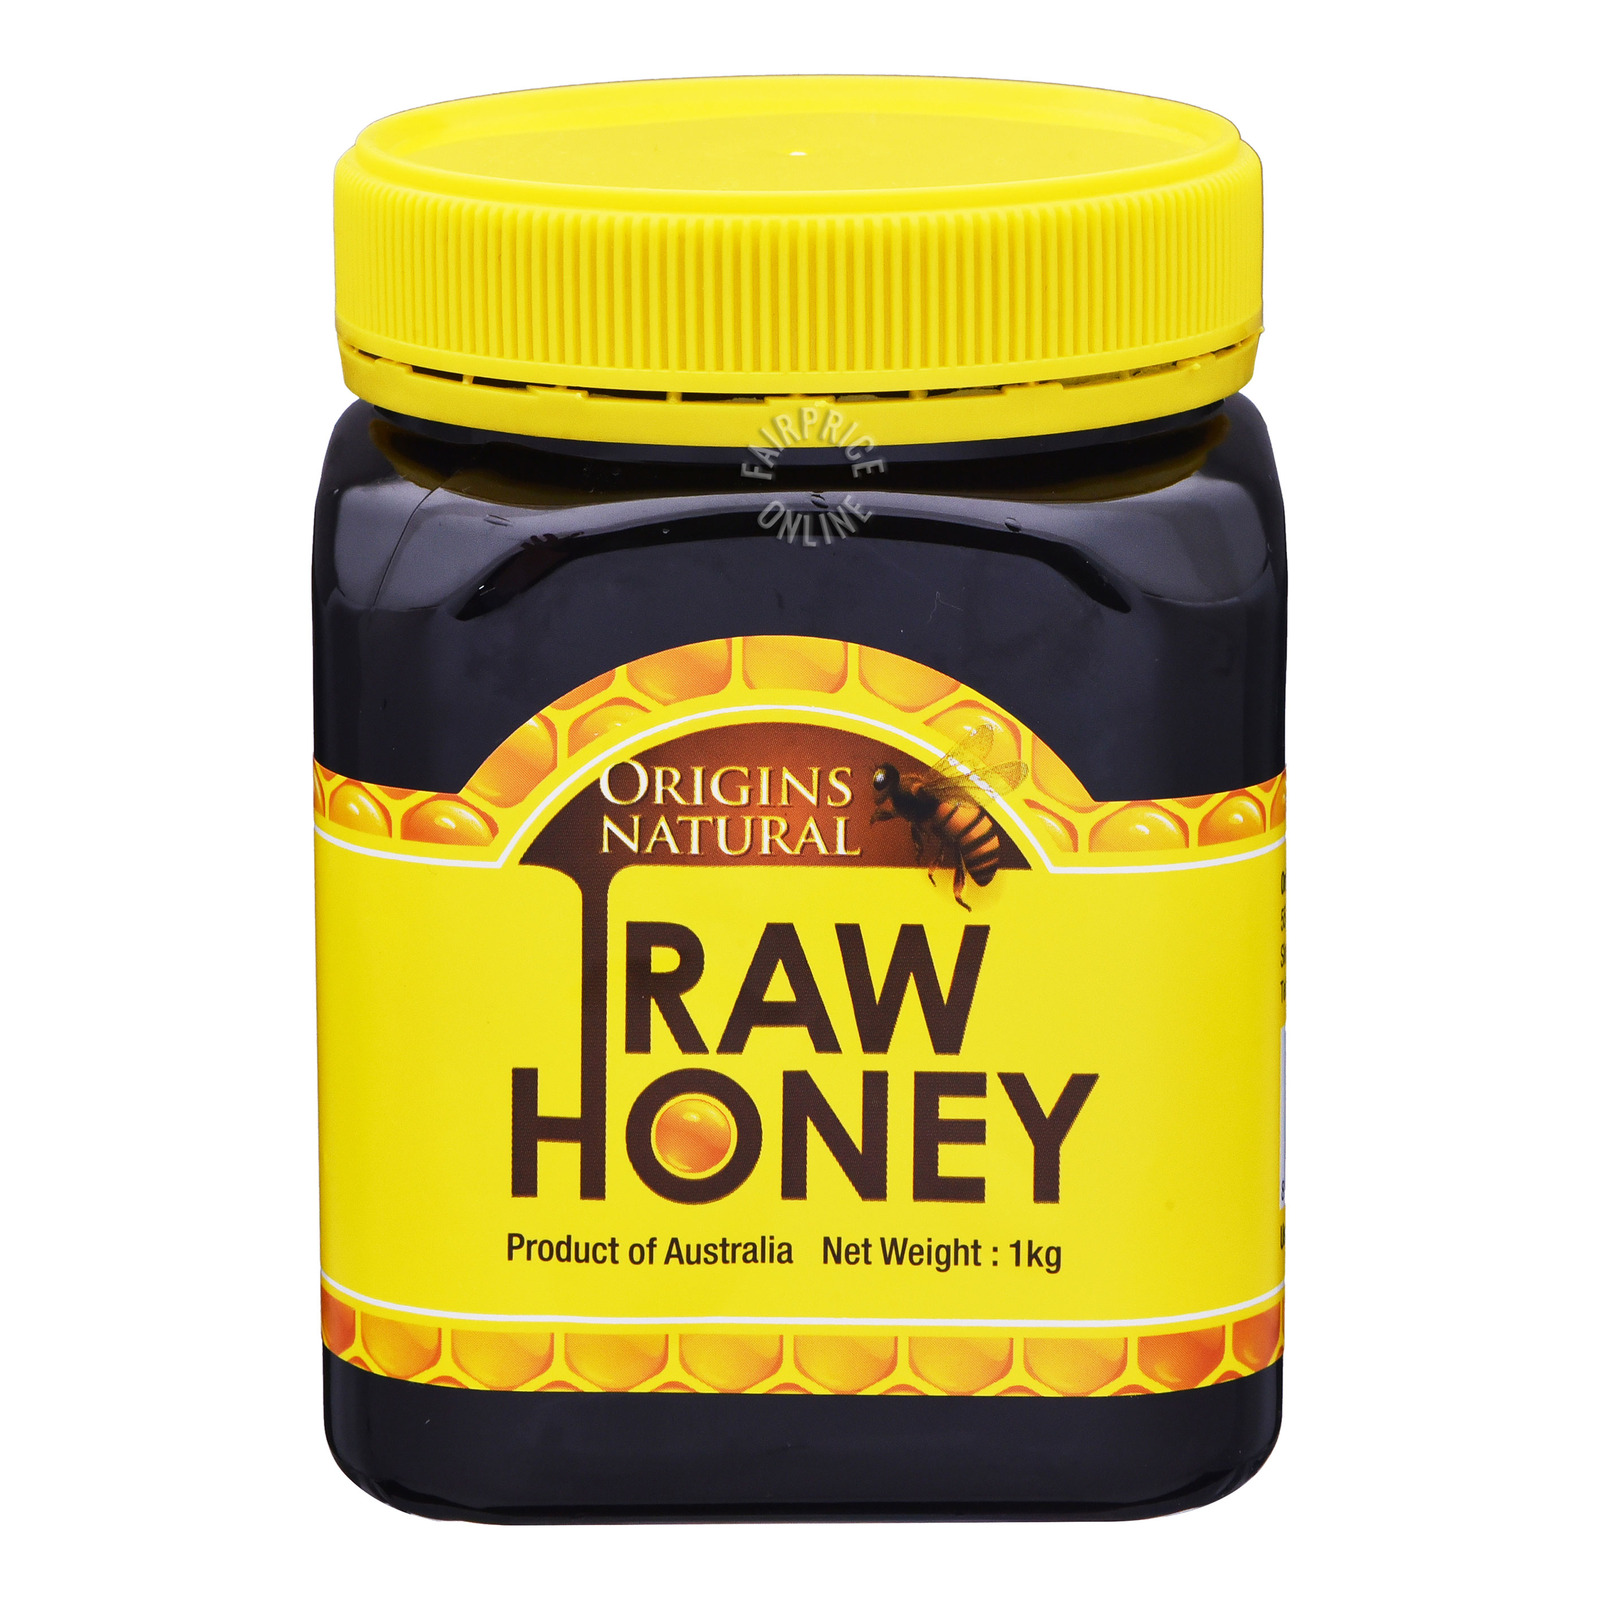 Origins Natural Raw Honey